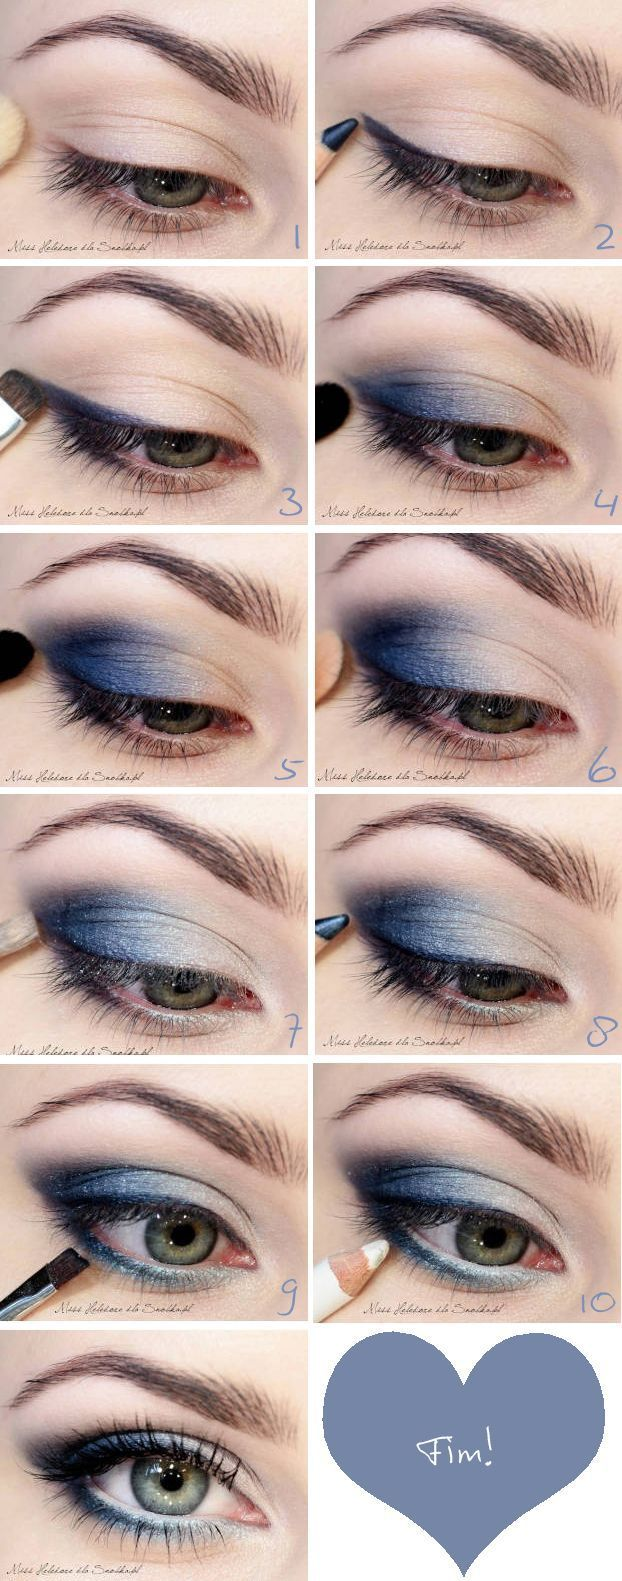 agradable maquillaje ojos azules mejores equipos ✖️ Quotes Ideas Art ✖️More Pins Like This One At FOSTERGINGER @ Pinterest✖️